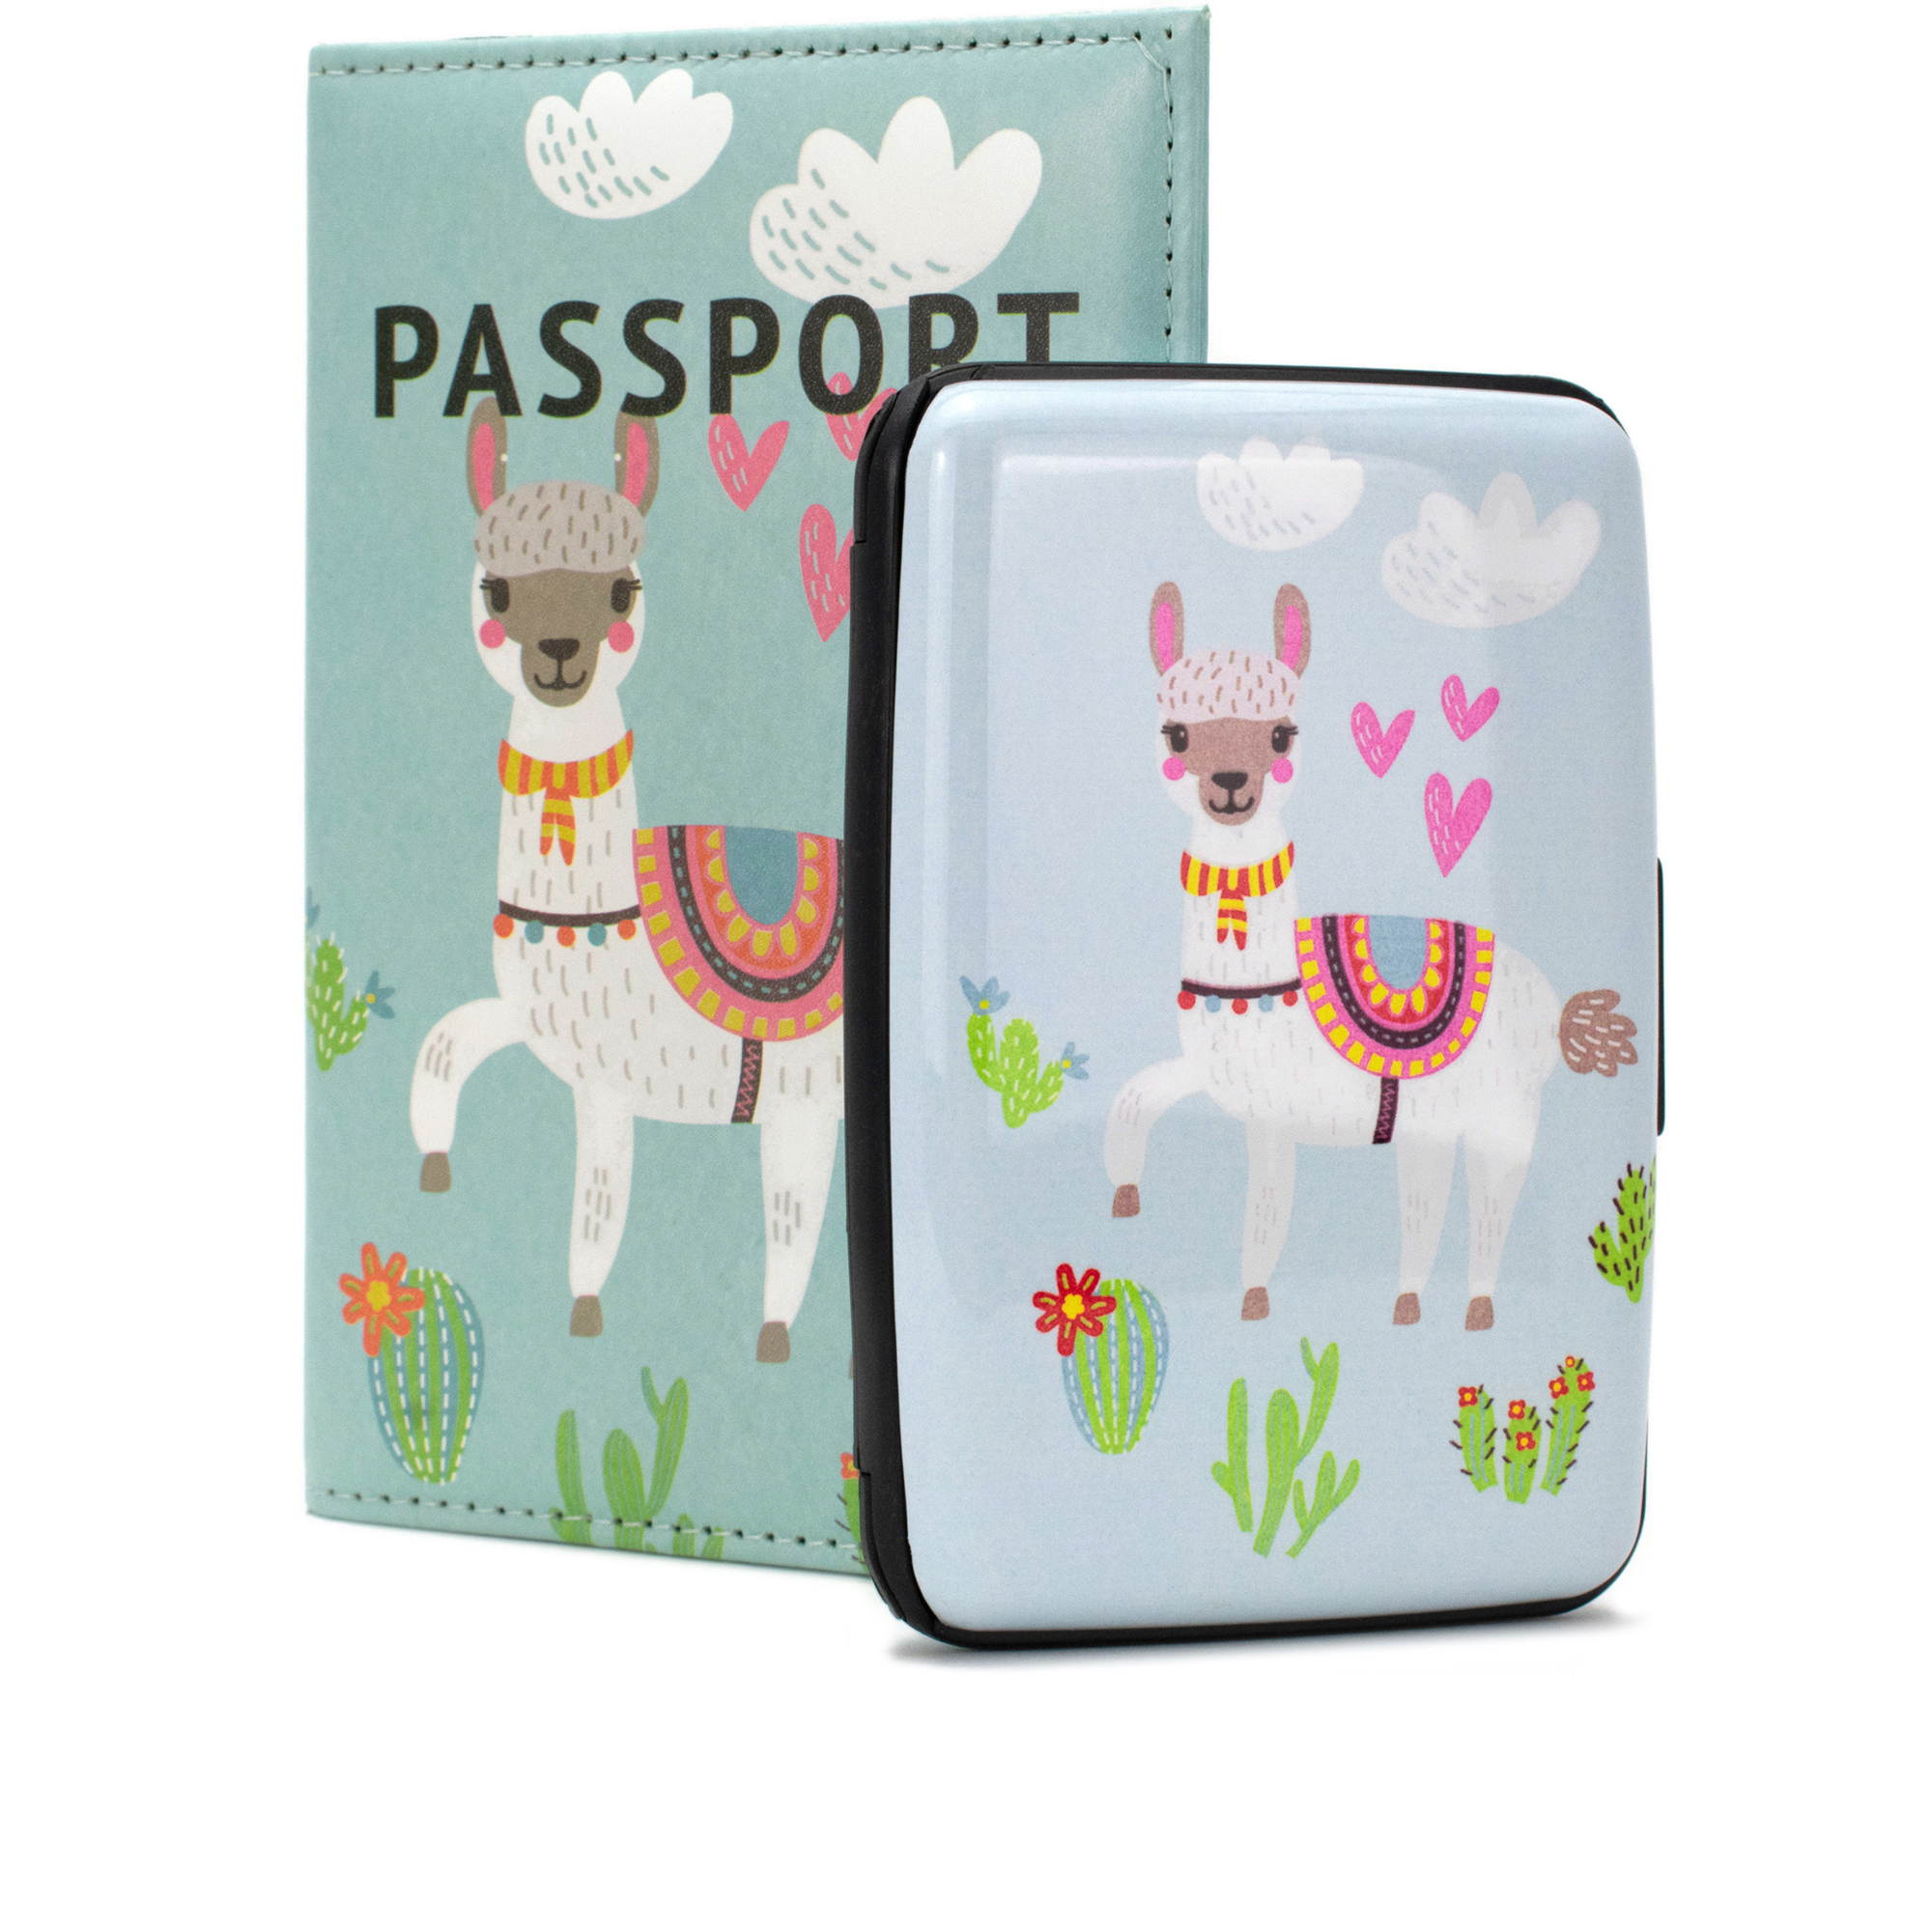 RFID Wallet & Passport Cover Set - Llama Love - Travellty